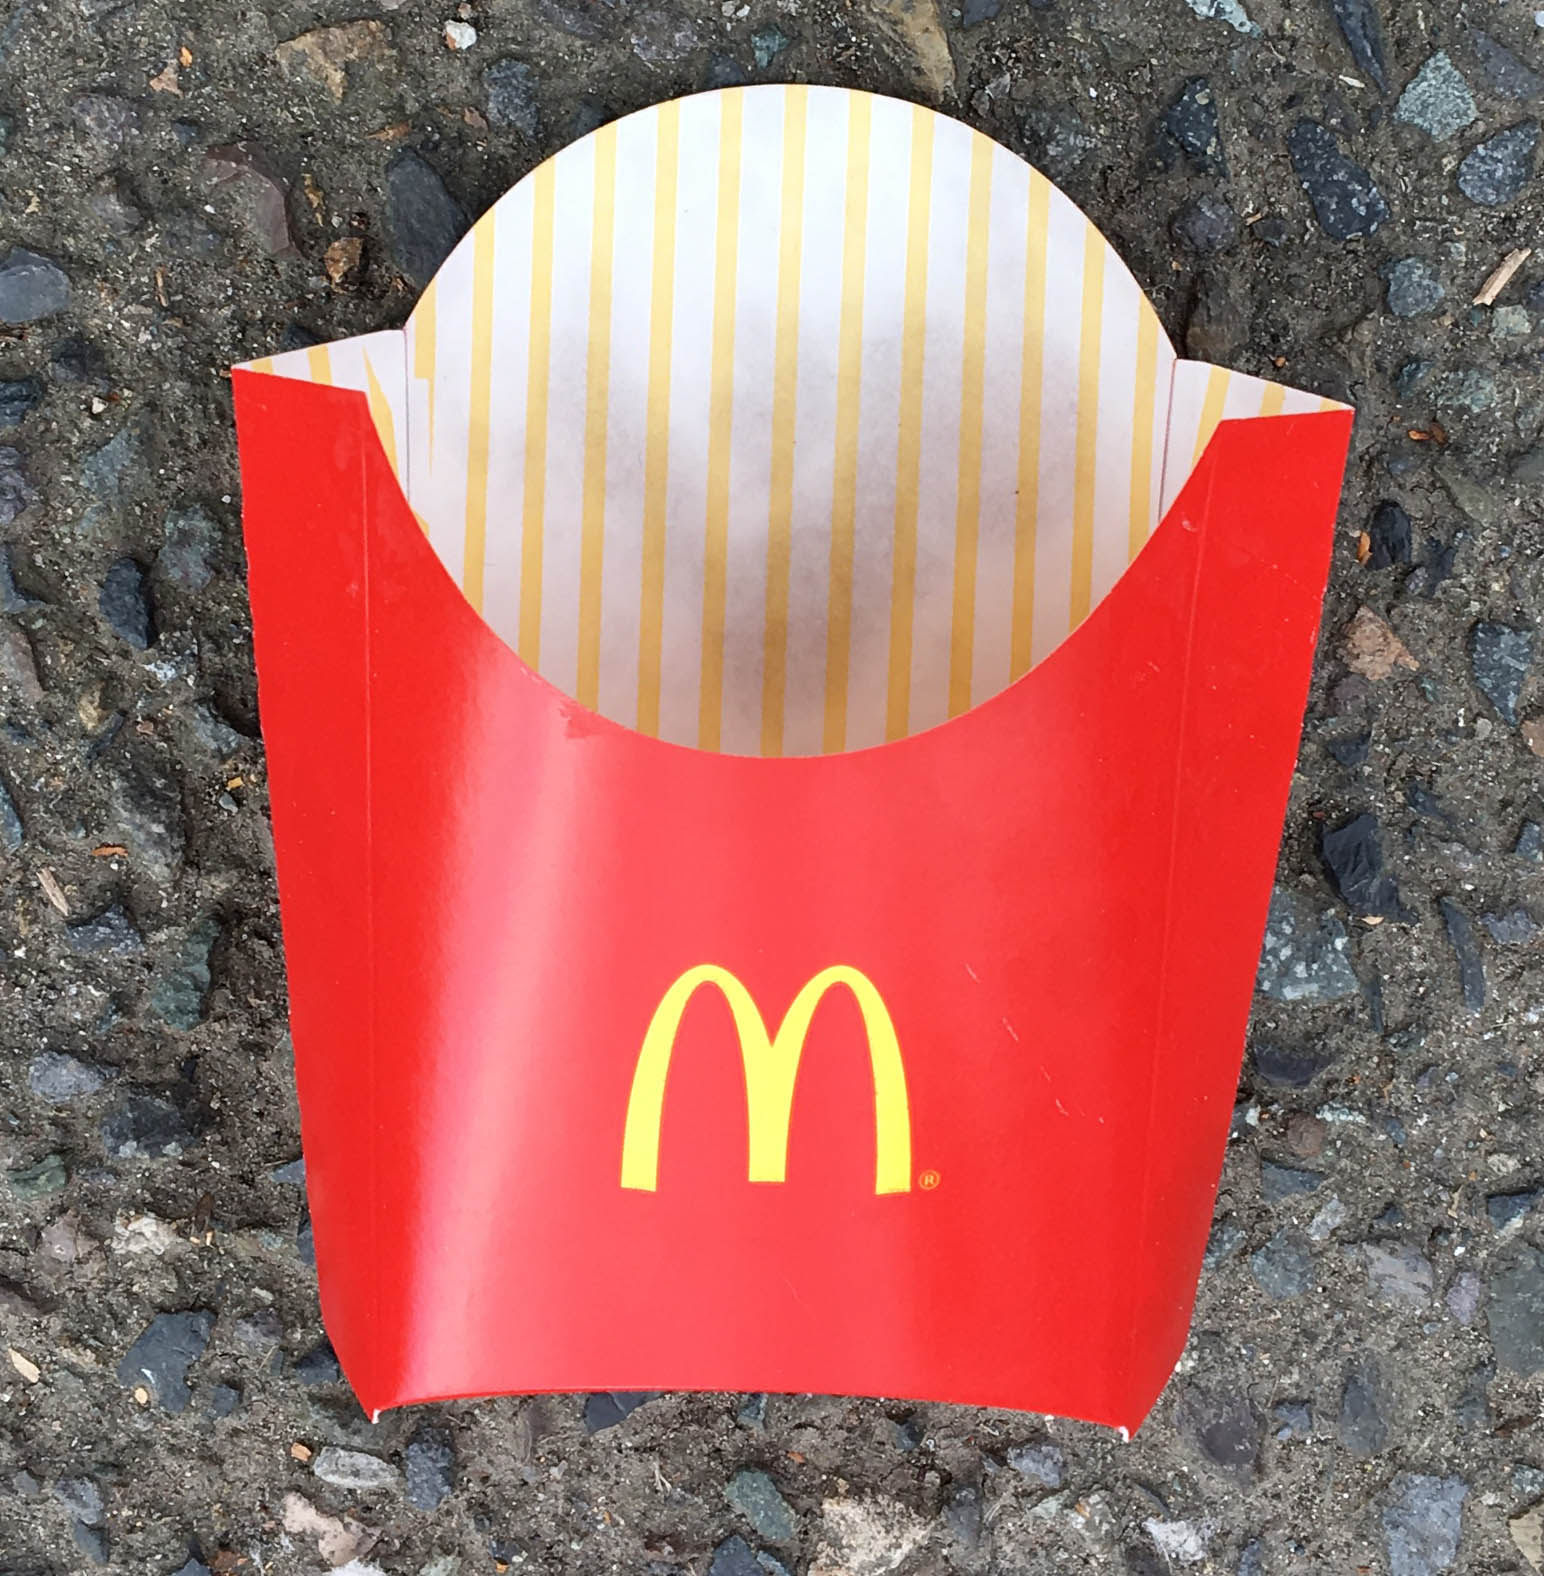 McDonalds French Fry Container Laying in the Parking Lot